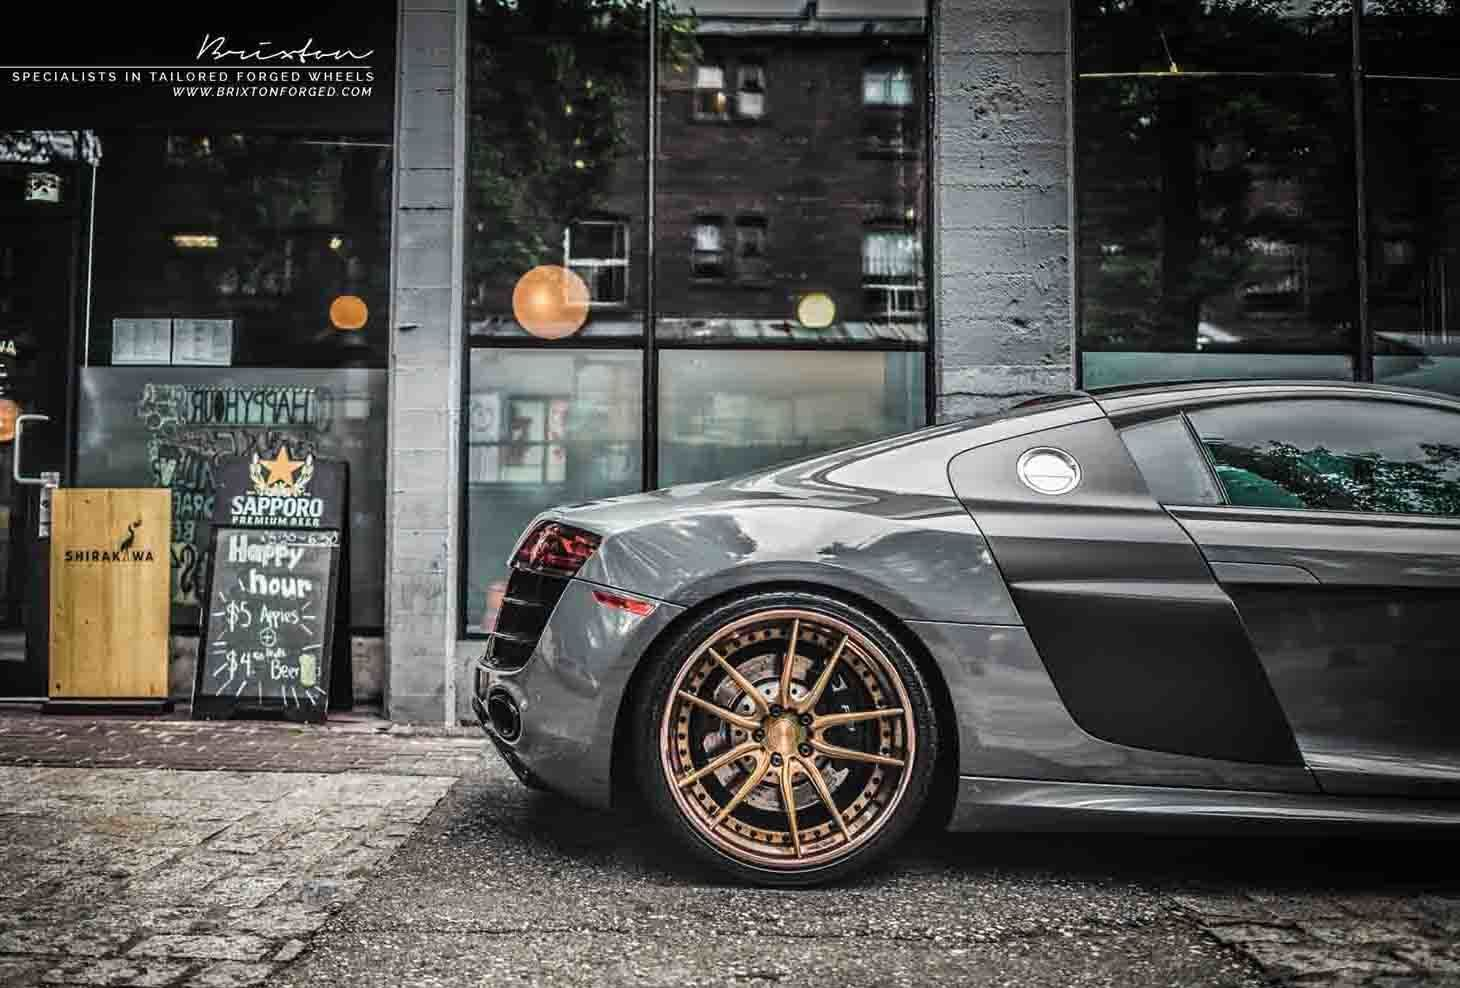 images-products-1-2306-232974594-brixton-forged-m53-targa-series-audi-r8-v10-grey-20-inch-super-concave-3-piece-brushed-bronze-03.jpg